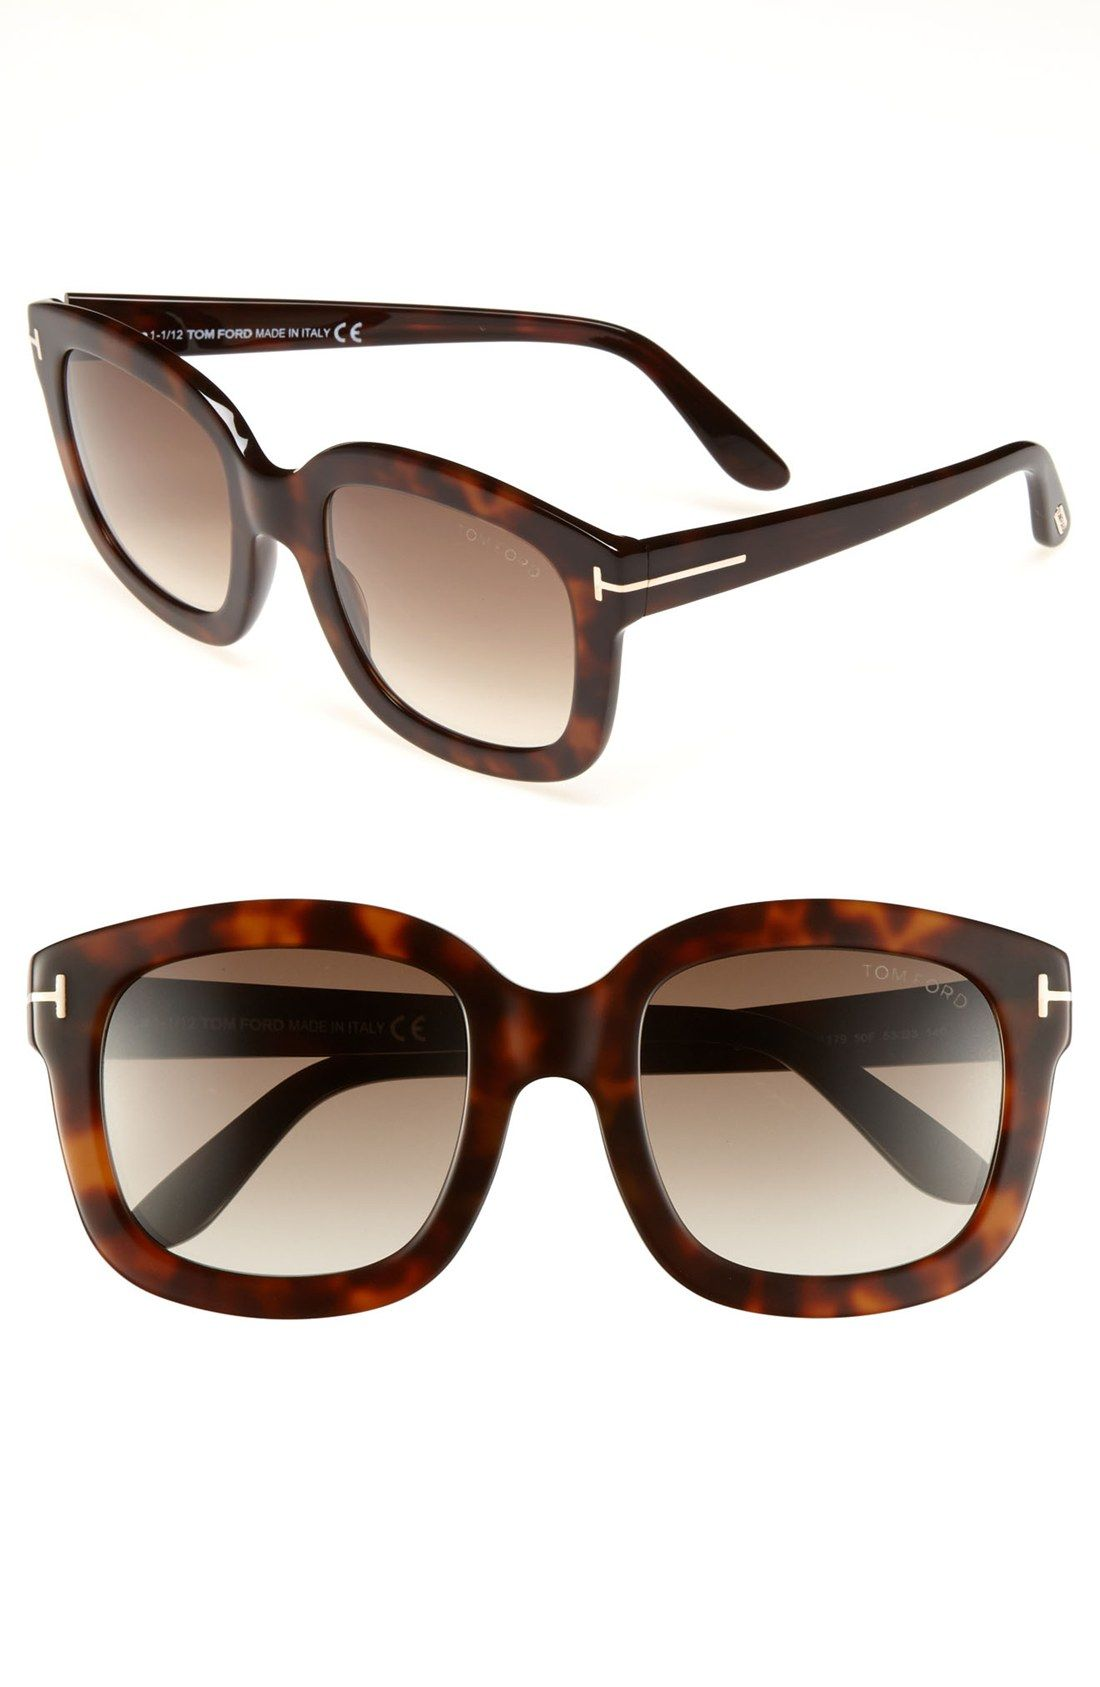 cc940320887b Sun in style with these sweet chunky sunglasses